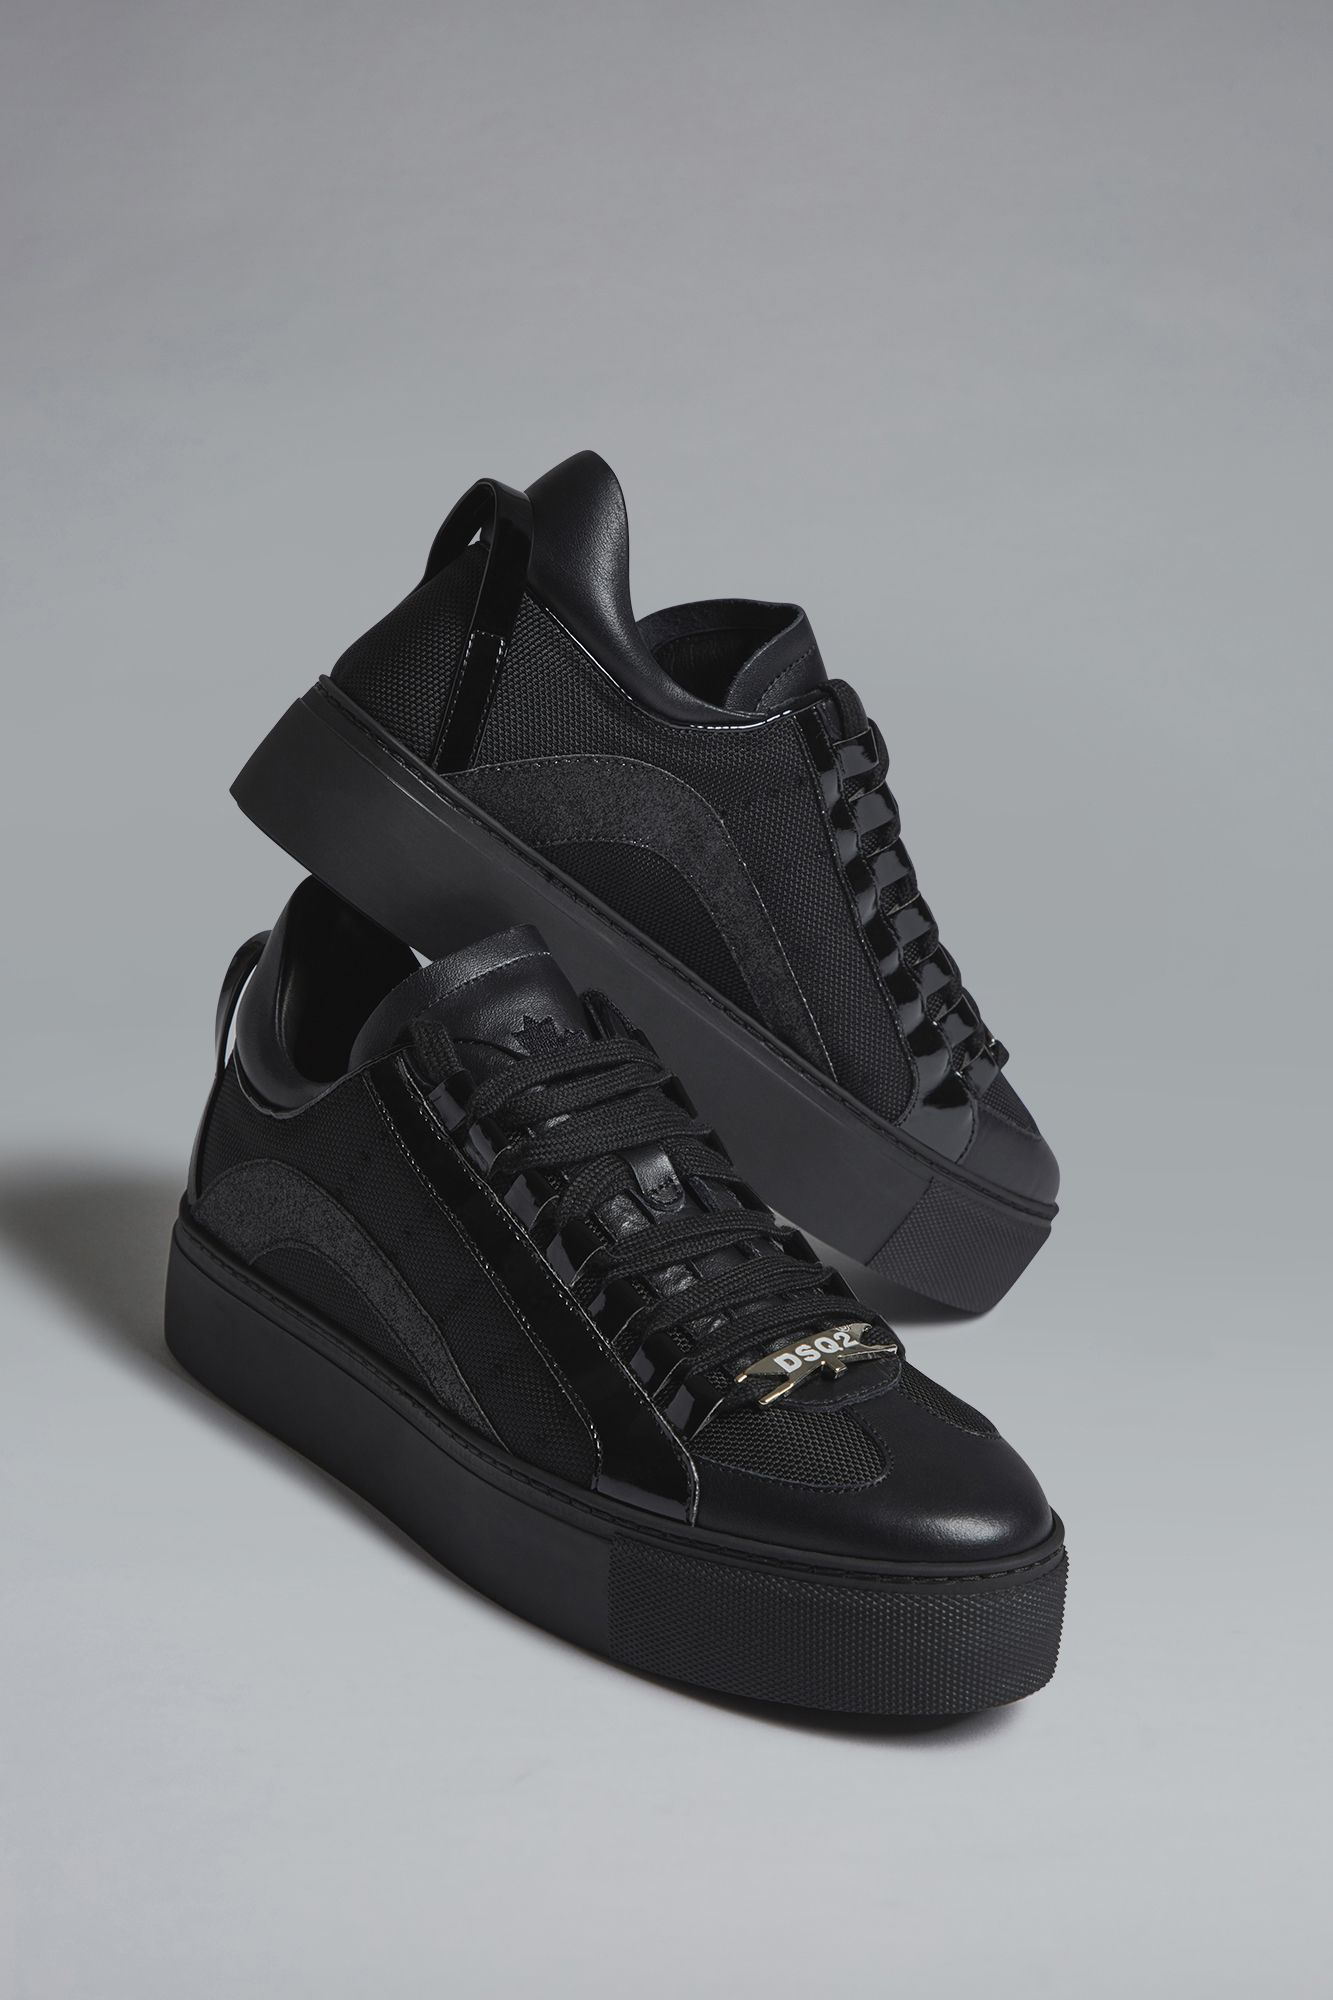 Dsquared2 551 Sneakers Sneakers For Women Official Store Sneakers Black Sneakers All Black Sneakers